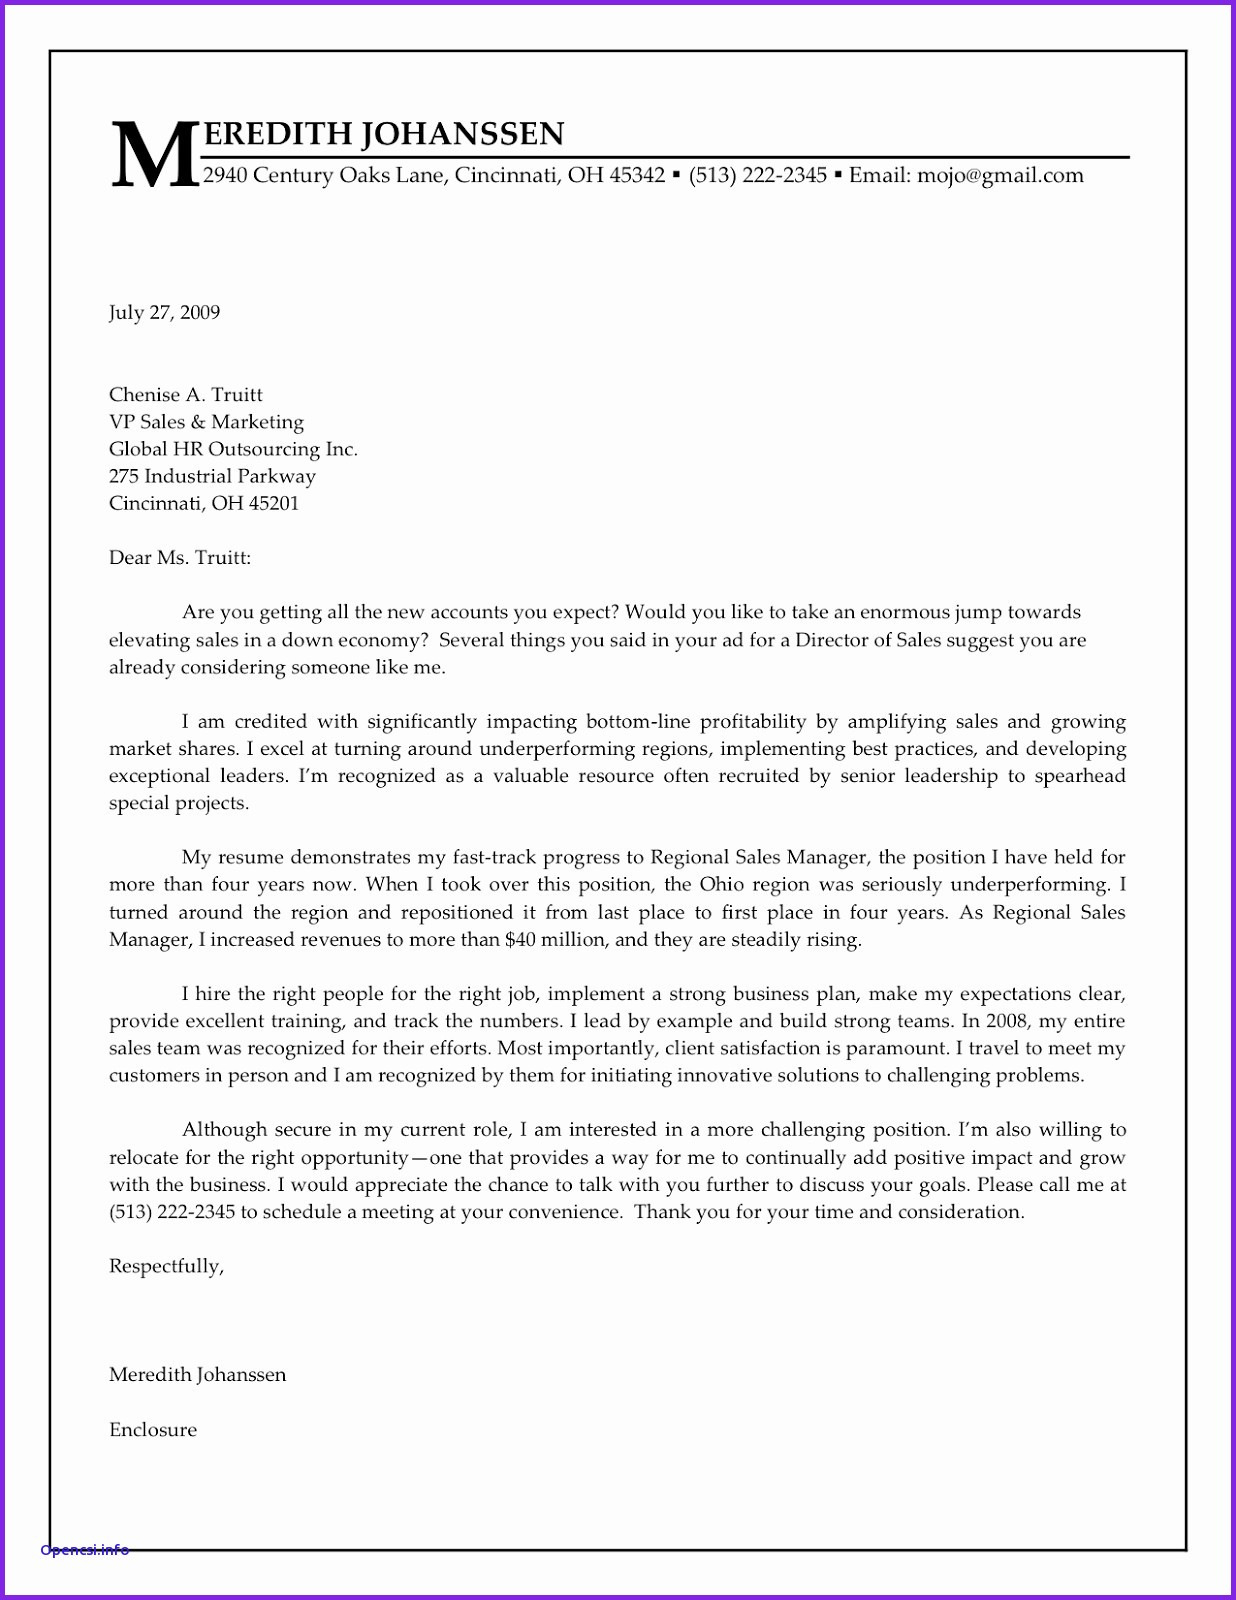 google letter template Collection-Resume Templats Fresh formatted Resume 0d New Free Business Letter Templates from Templates Google Docs source 17-r